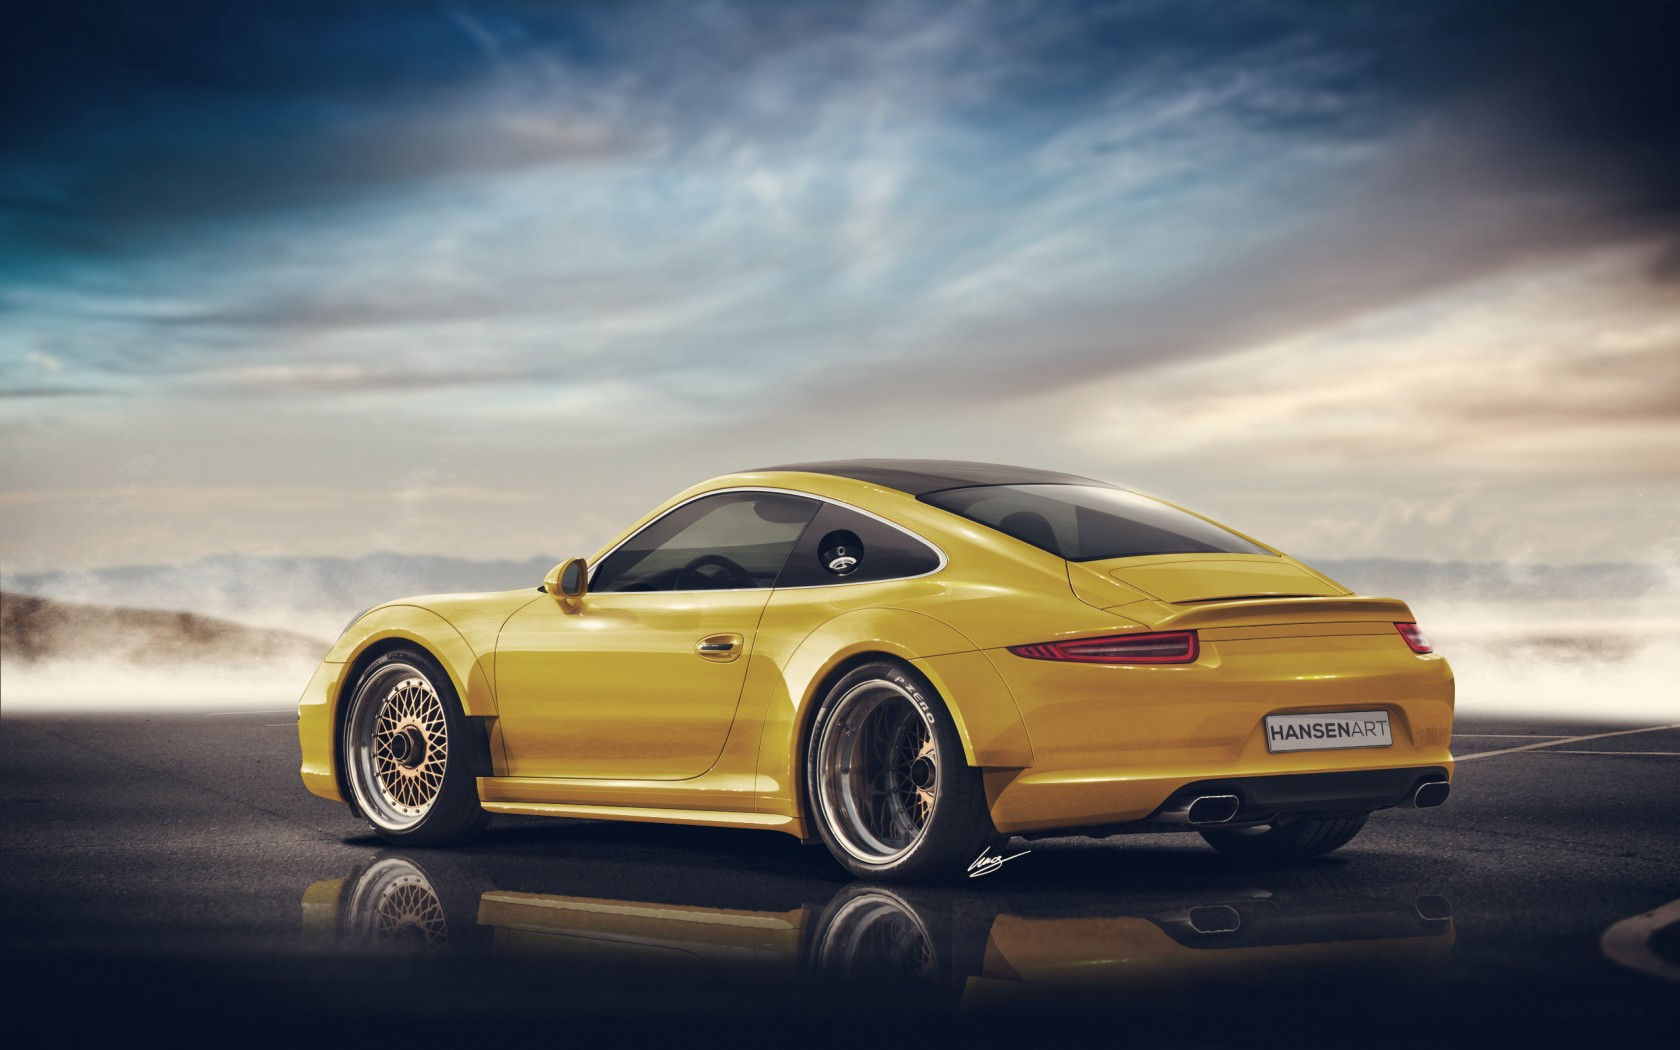 Hd Wallpaper Car Widescreen Porsche 911 Widebody Wallpaper Hd Car Wallpapers Id 5694